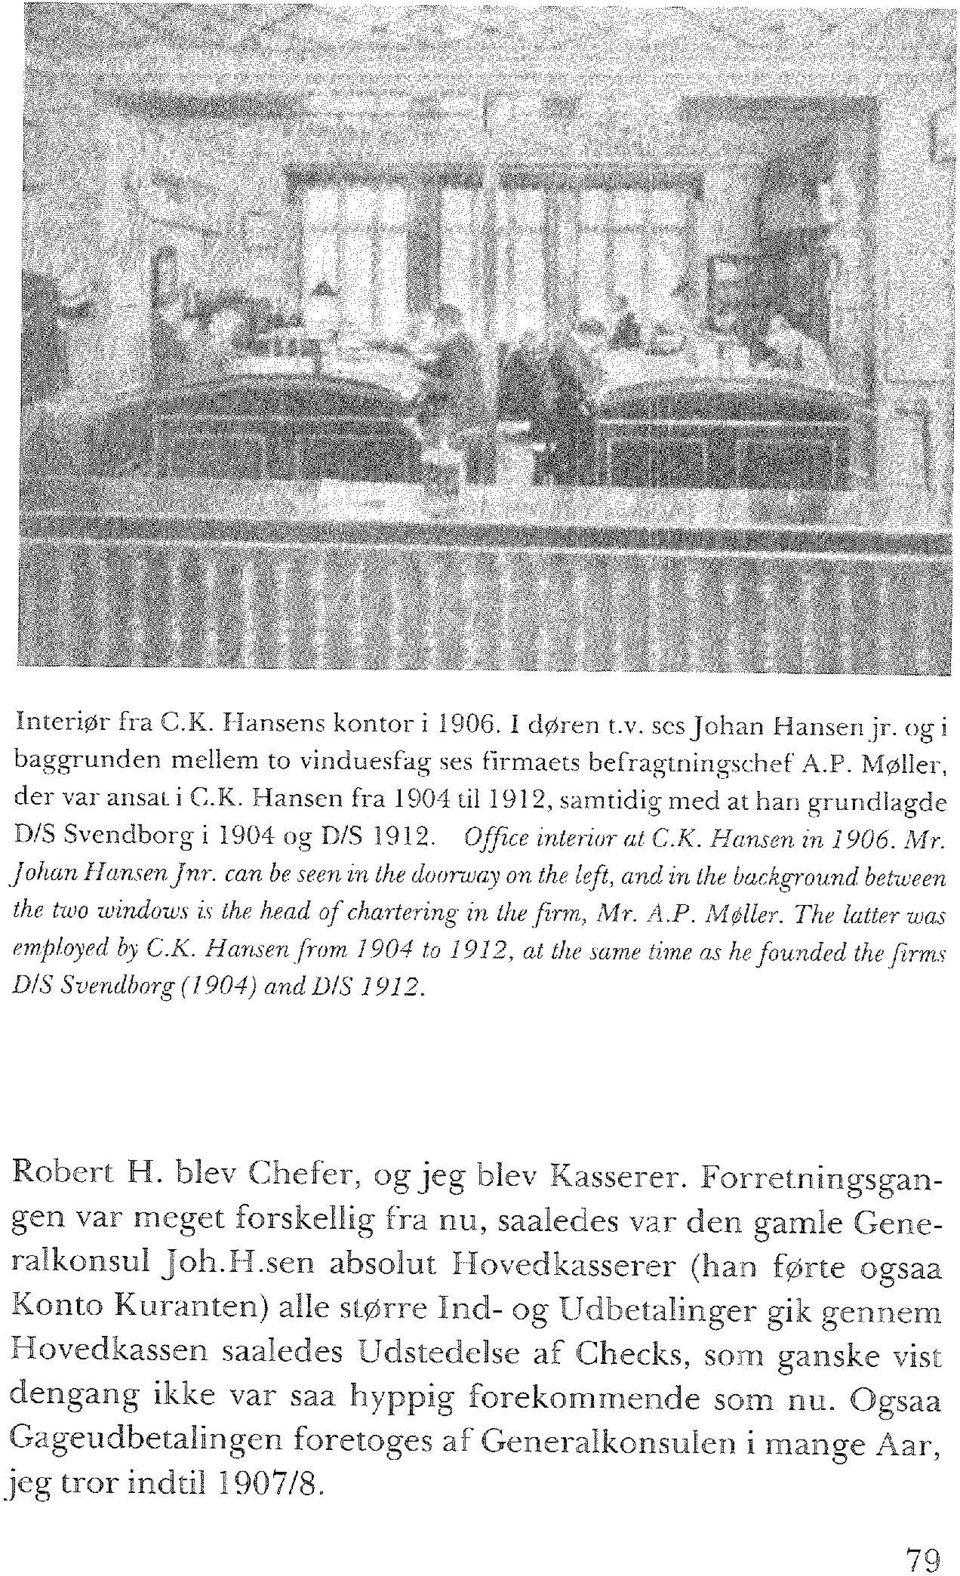 Møller. The latter was employed by C.K. Hansen from, 1904 to 1912, at the same time as he founded the firms DIS Svendborg (1904) and Dl S 1912. Robert H. blev Chefer, ogjeg blev Kasserer.